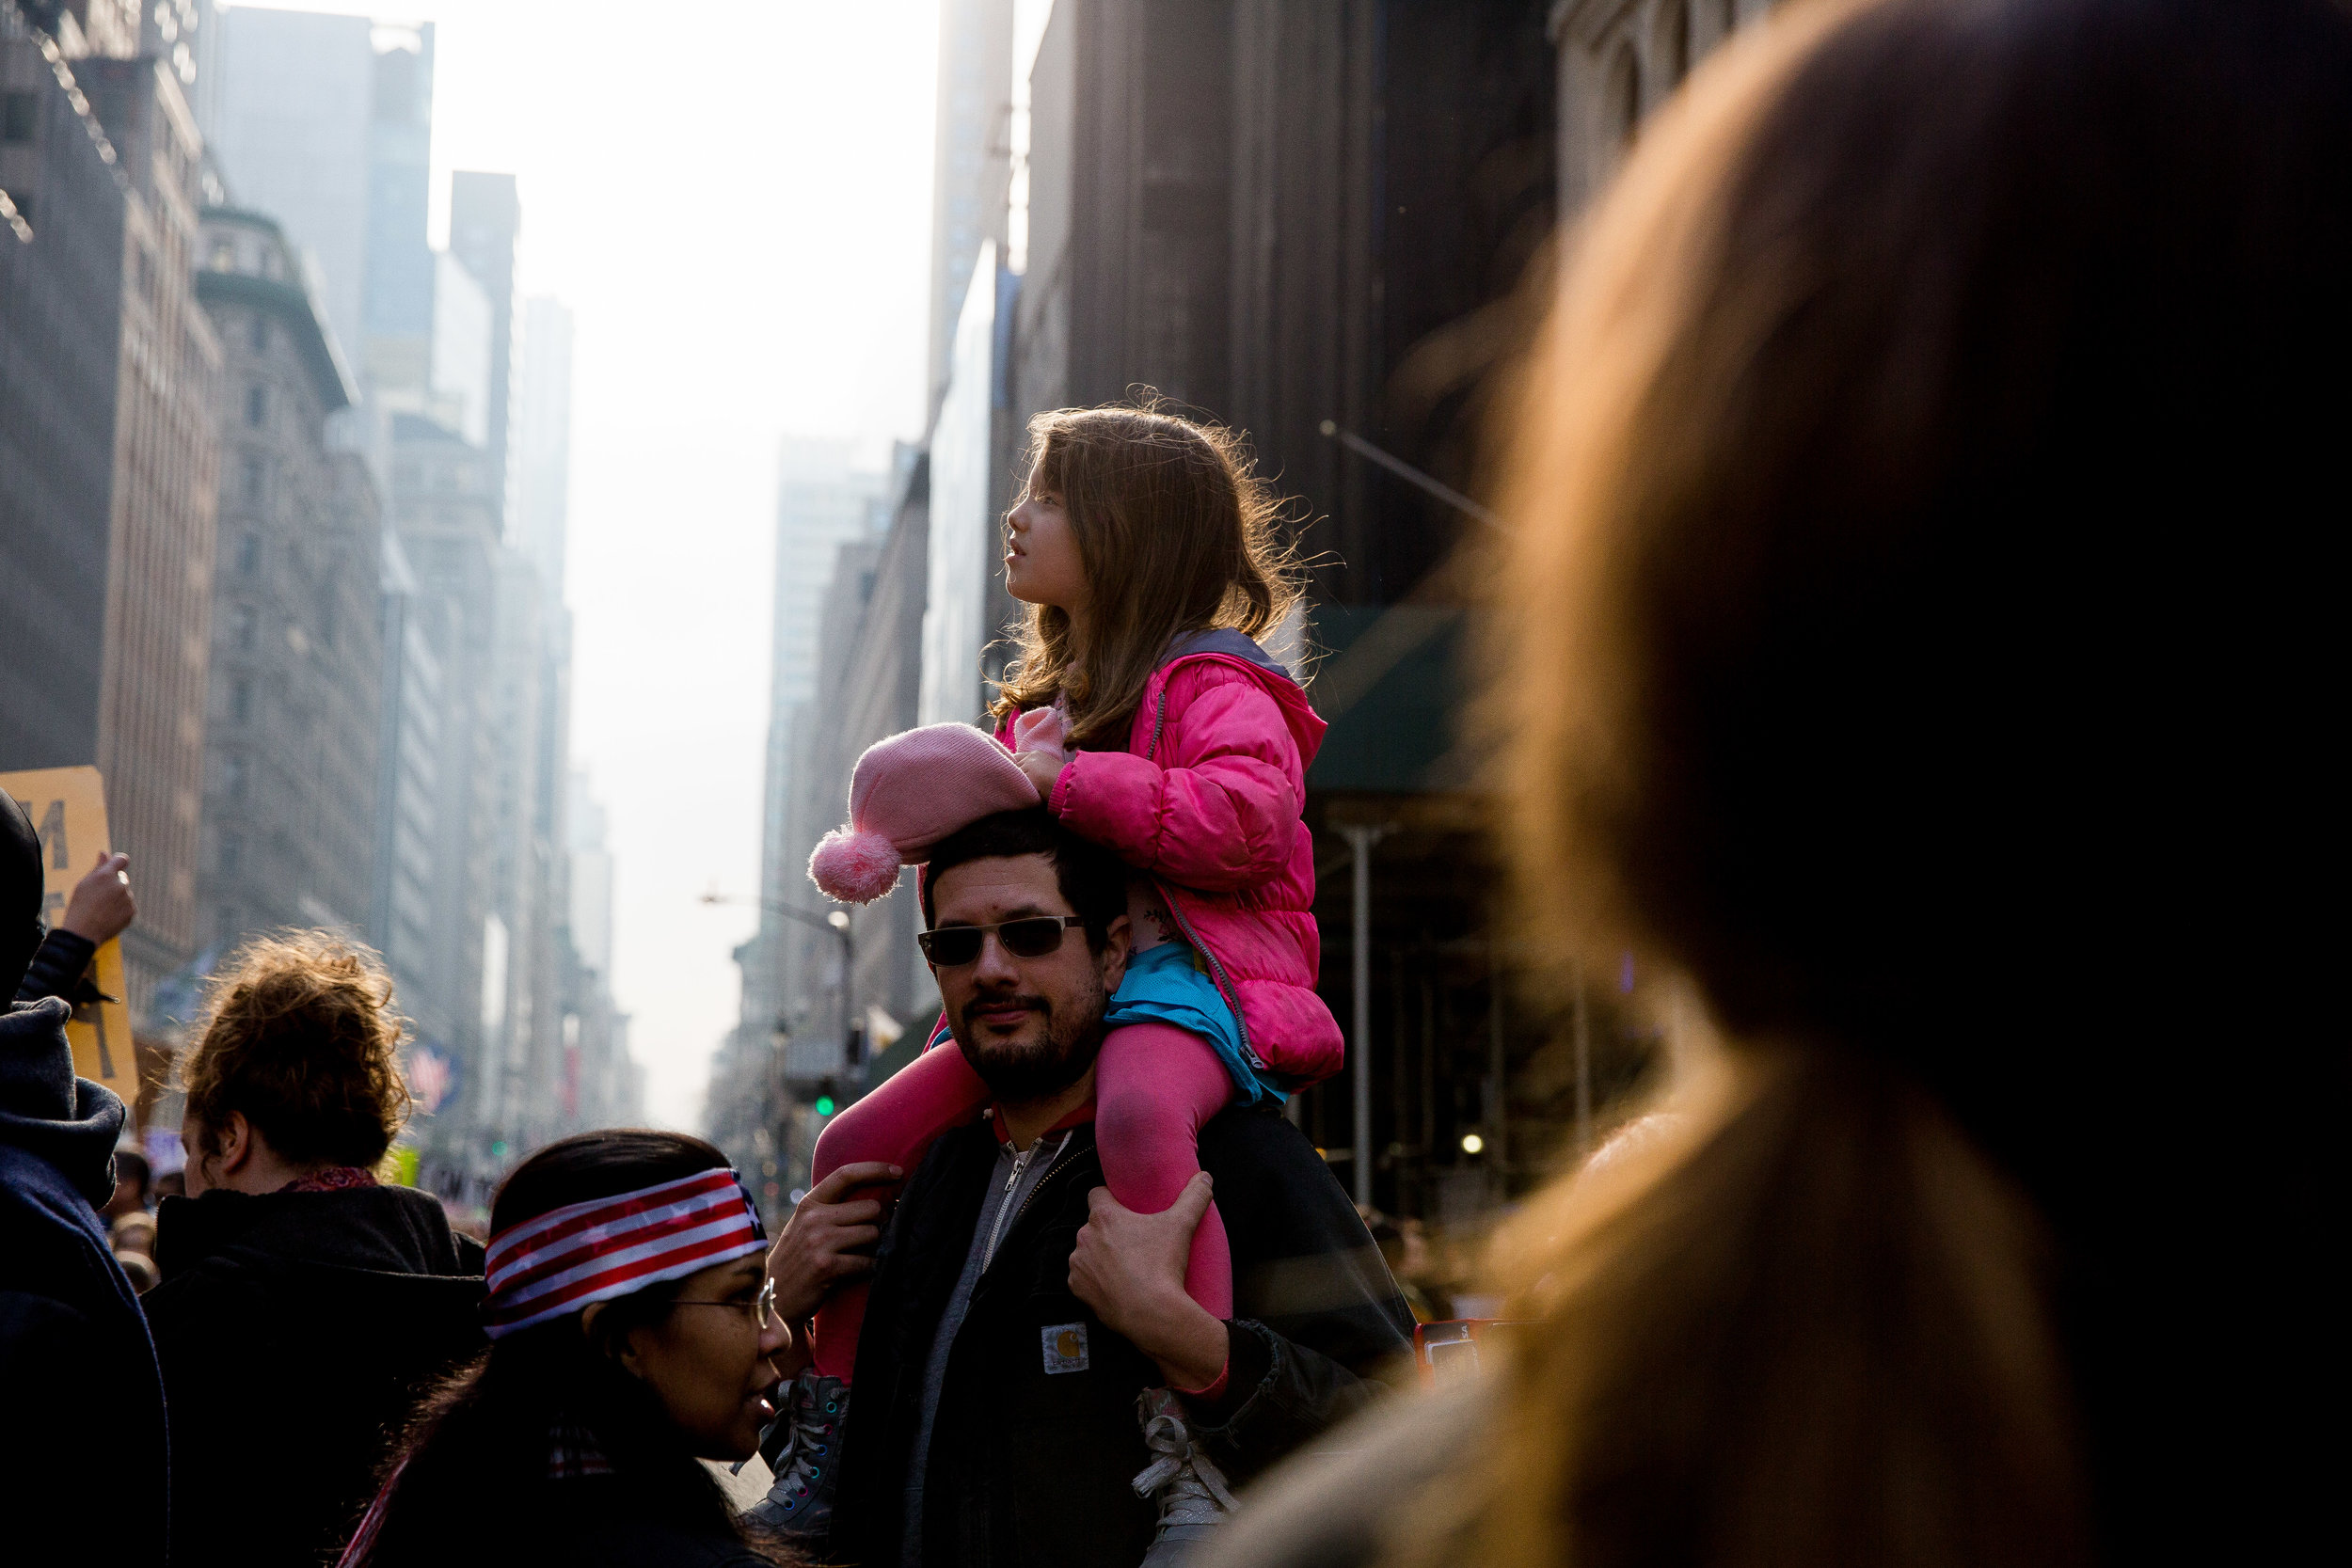 womensmarch-girl-1.jpg